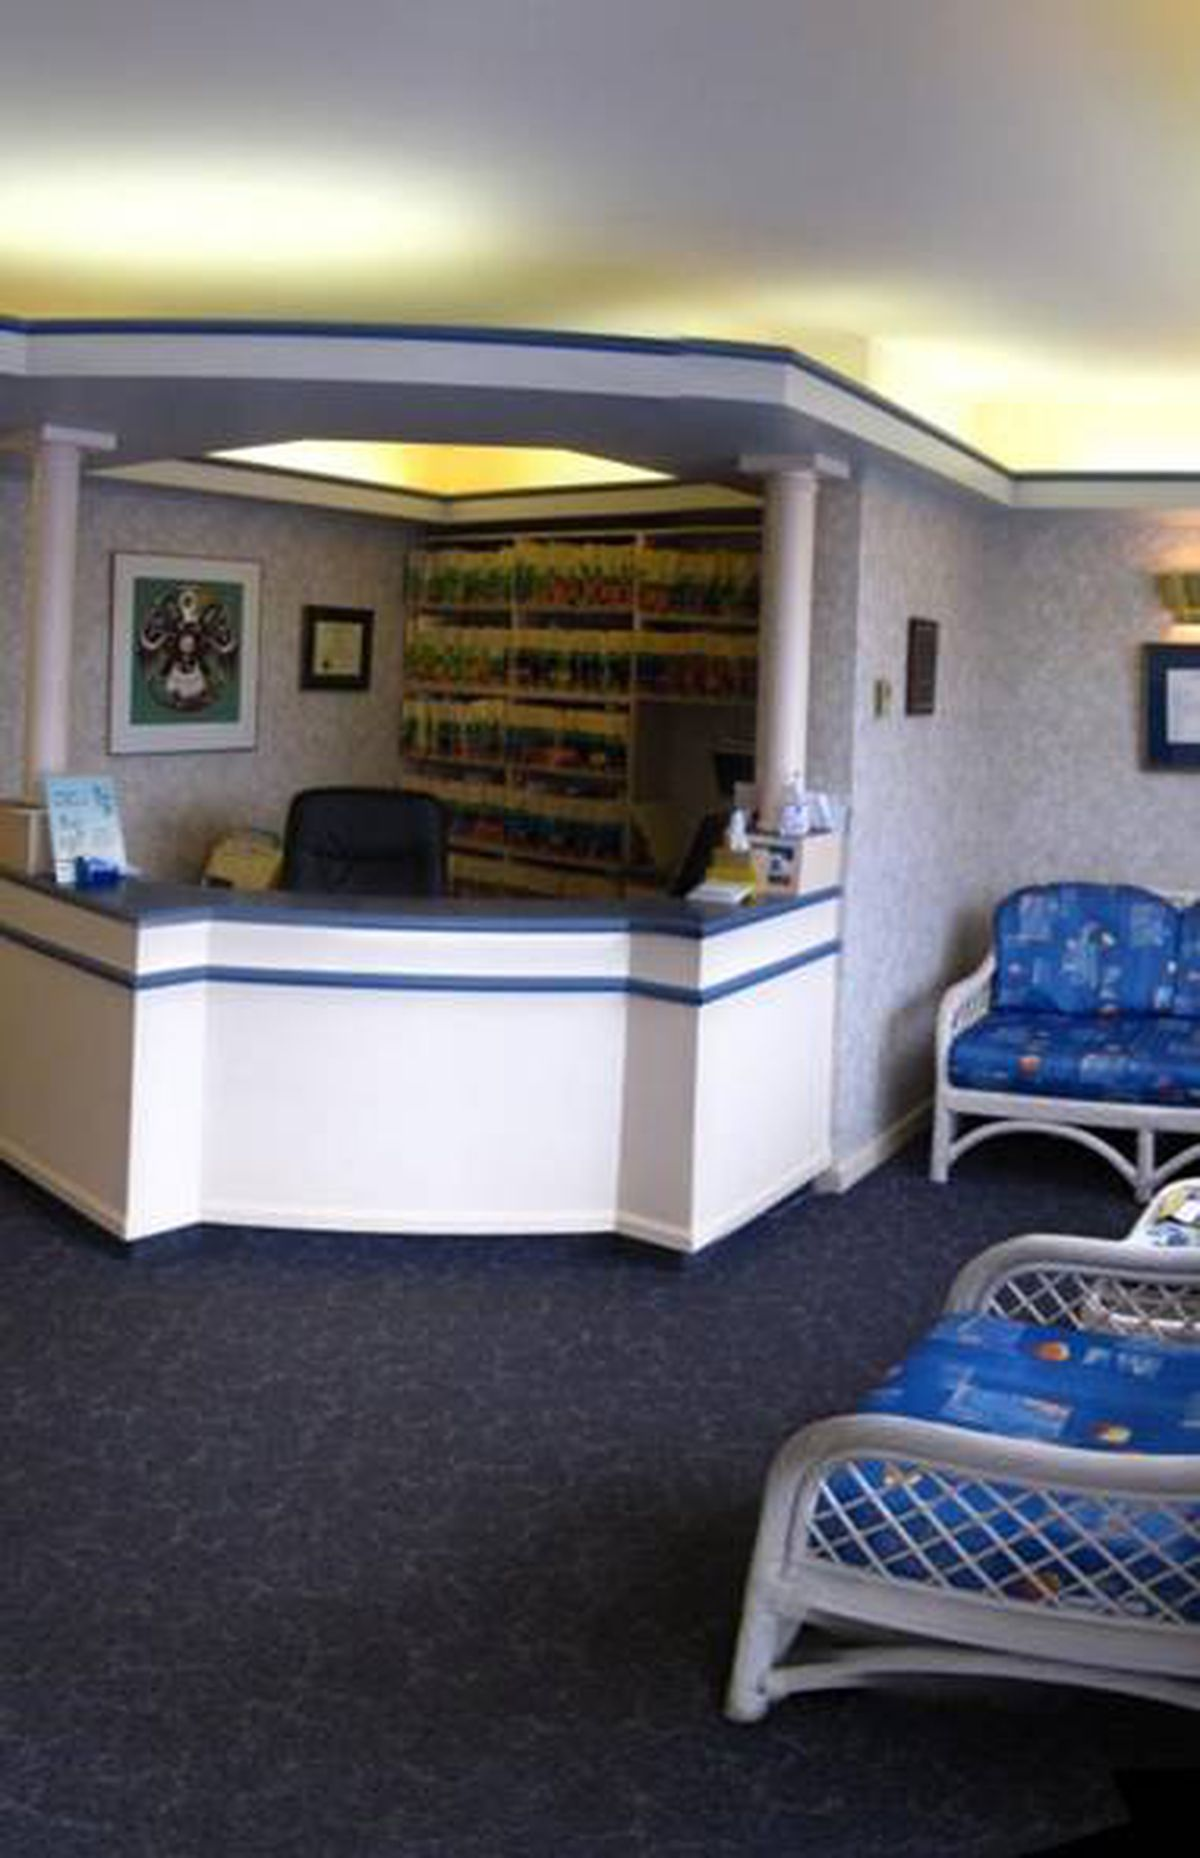 """""""I'm looking for a reception area that is more in keeping with innovative dental practices of the clinic - Dr. Adam Pite STYLE: Firstly, remove all the wallpaper and select a neutral base colour to work off of. Consider removing the carpet and replacing it with laminate floors, which is a cost effective option and reconfigure the reception desk by elimination the angles and creating a """"wrap"""" which extends to the floor. And update the artwork, hanging the new pieces lower to work better with the height of the room. STORAGE: Behind the reception desk, install a built-in storage system that would conceal the exposed filing system and create a functional featured design element. LIGHTING: Exchange the florescent lights with halogens and introduce hanging pendant lights for a warmer ambience. Also, replacing the current furniture with more modern pieces will also lighten the overall feeling of the space. - Del Terrelonge, owner and designer, Rhed Design Studio"""